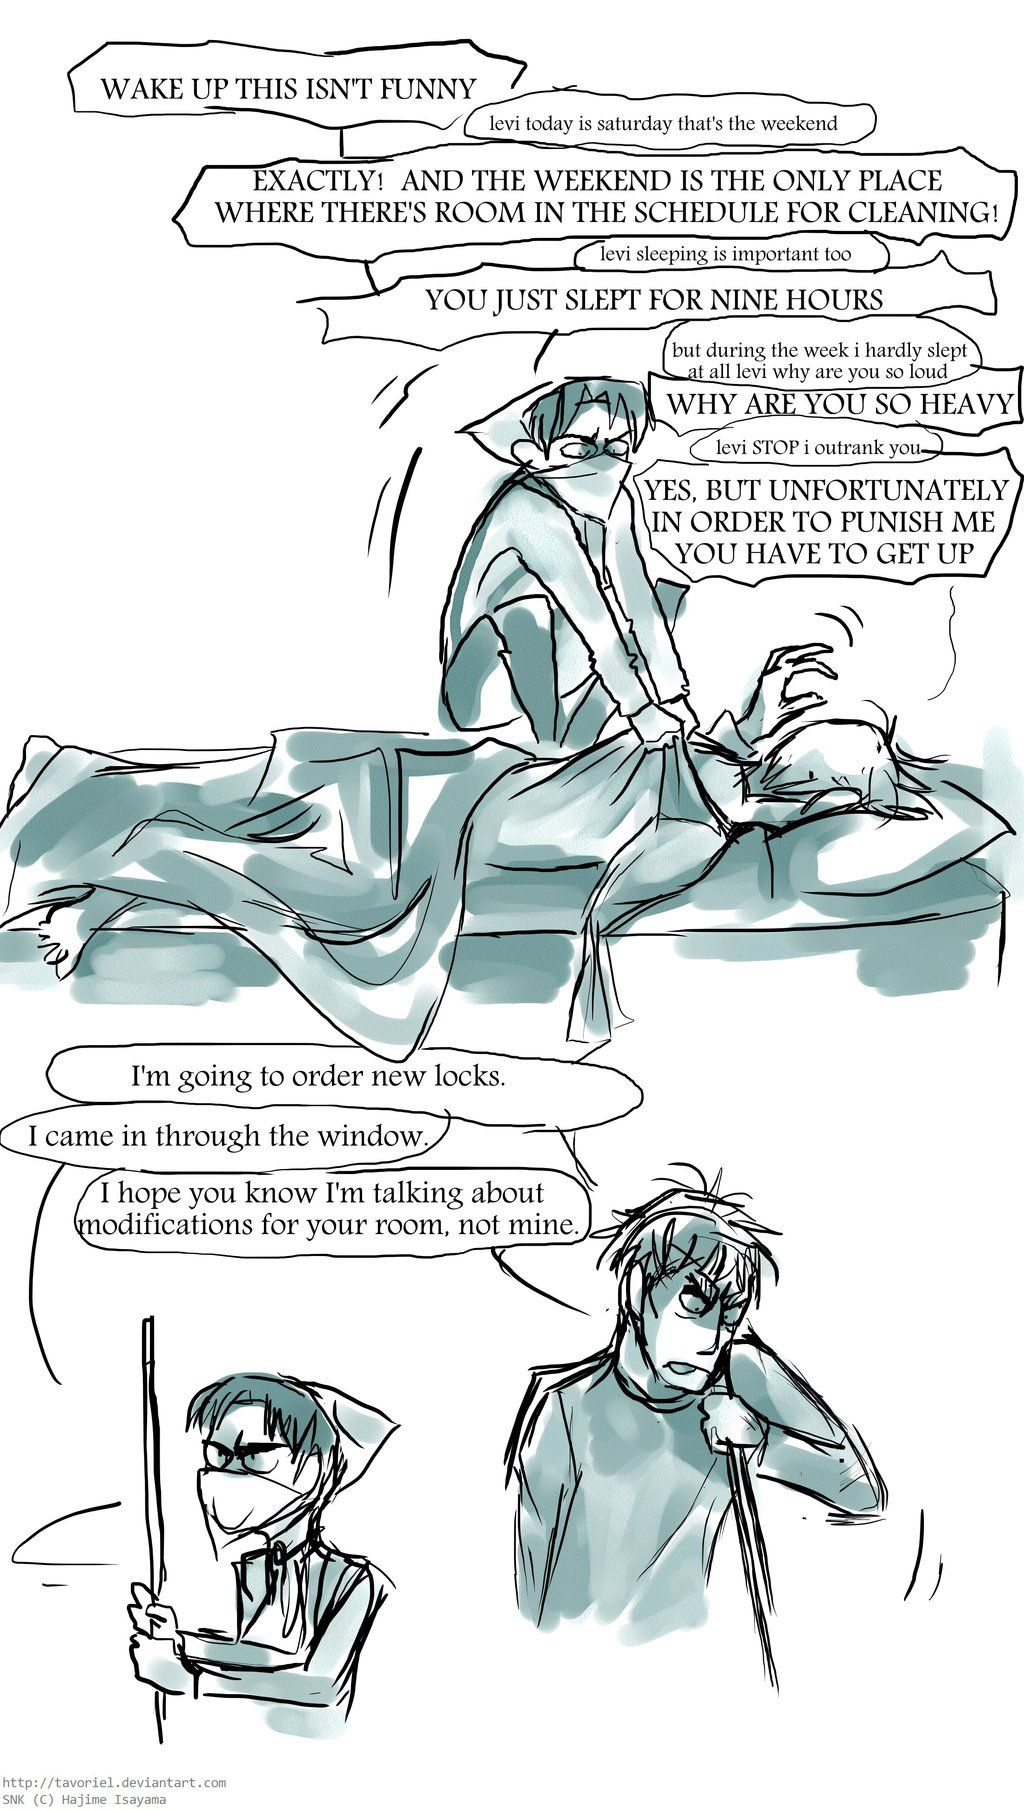 Wake Up This Isn T Funny By Tavoriel On Deviantart Attack On Titan Anime Attack On Titan Funny Attack On Titan